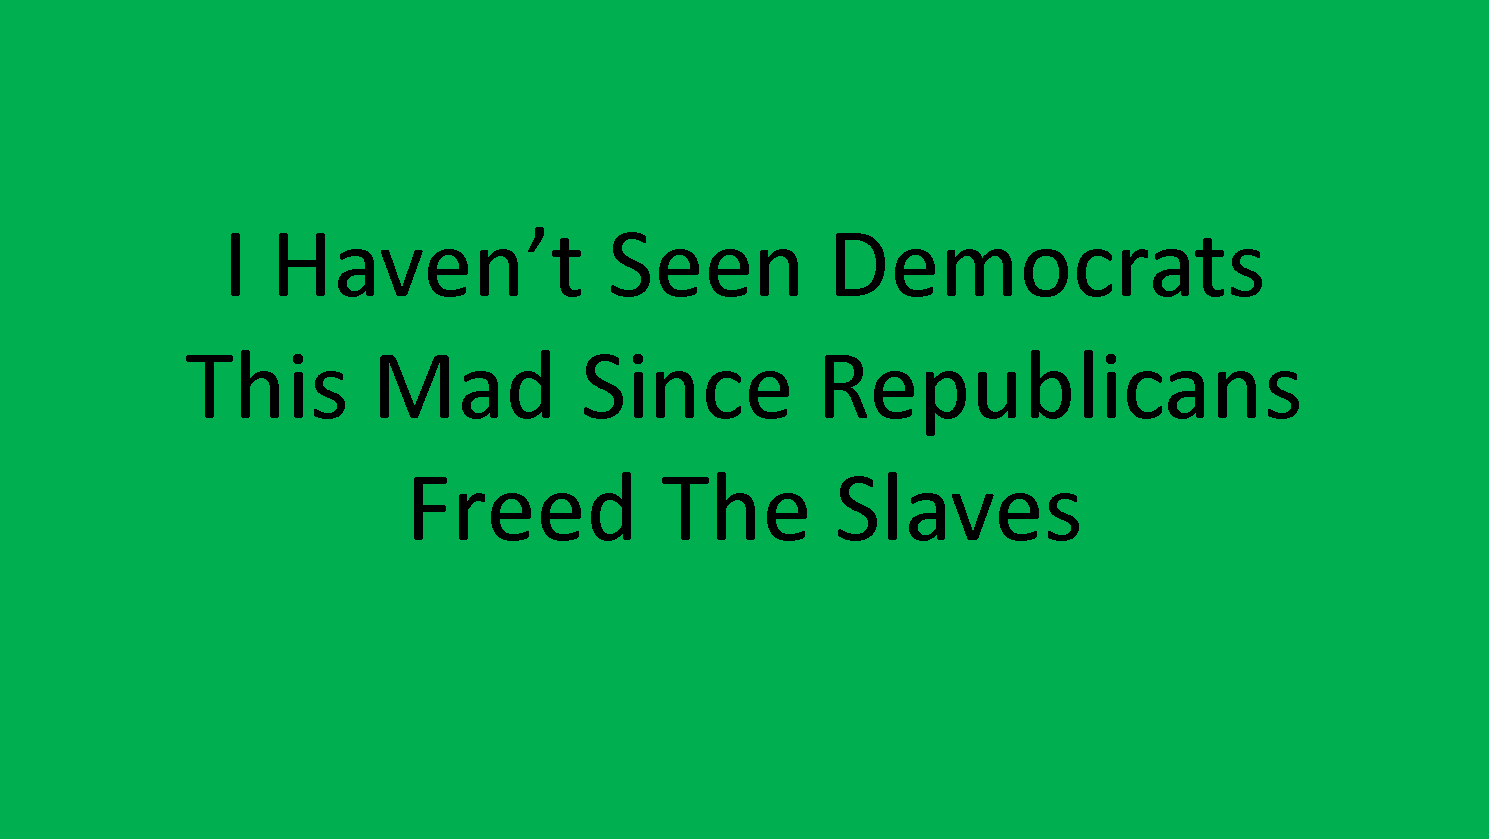 Freed The Slaves